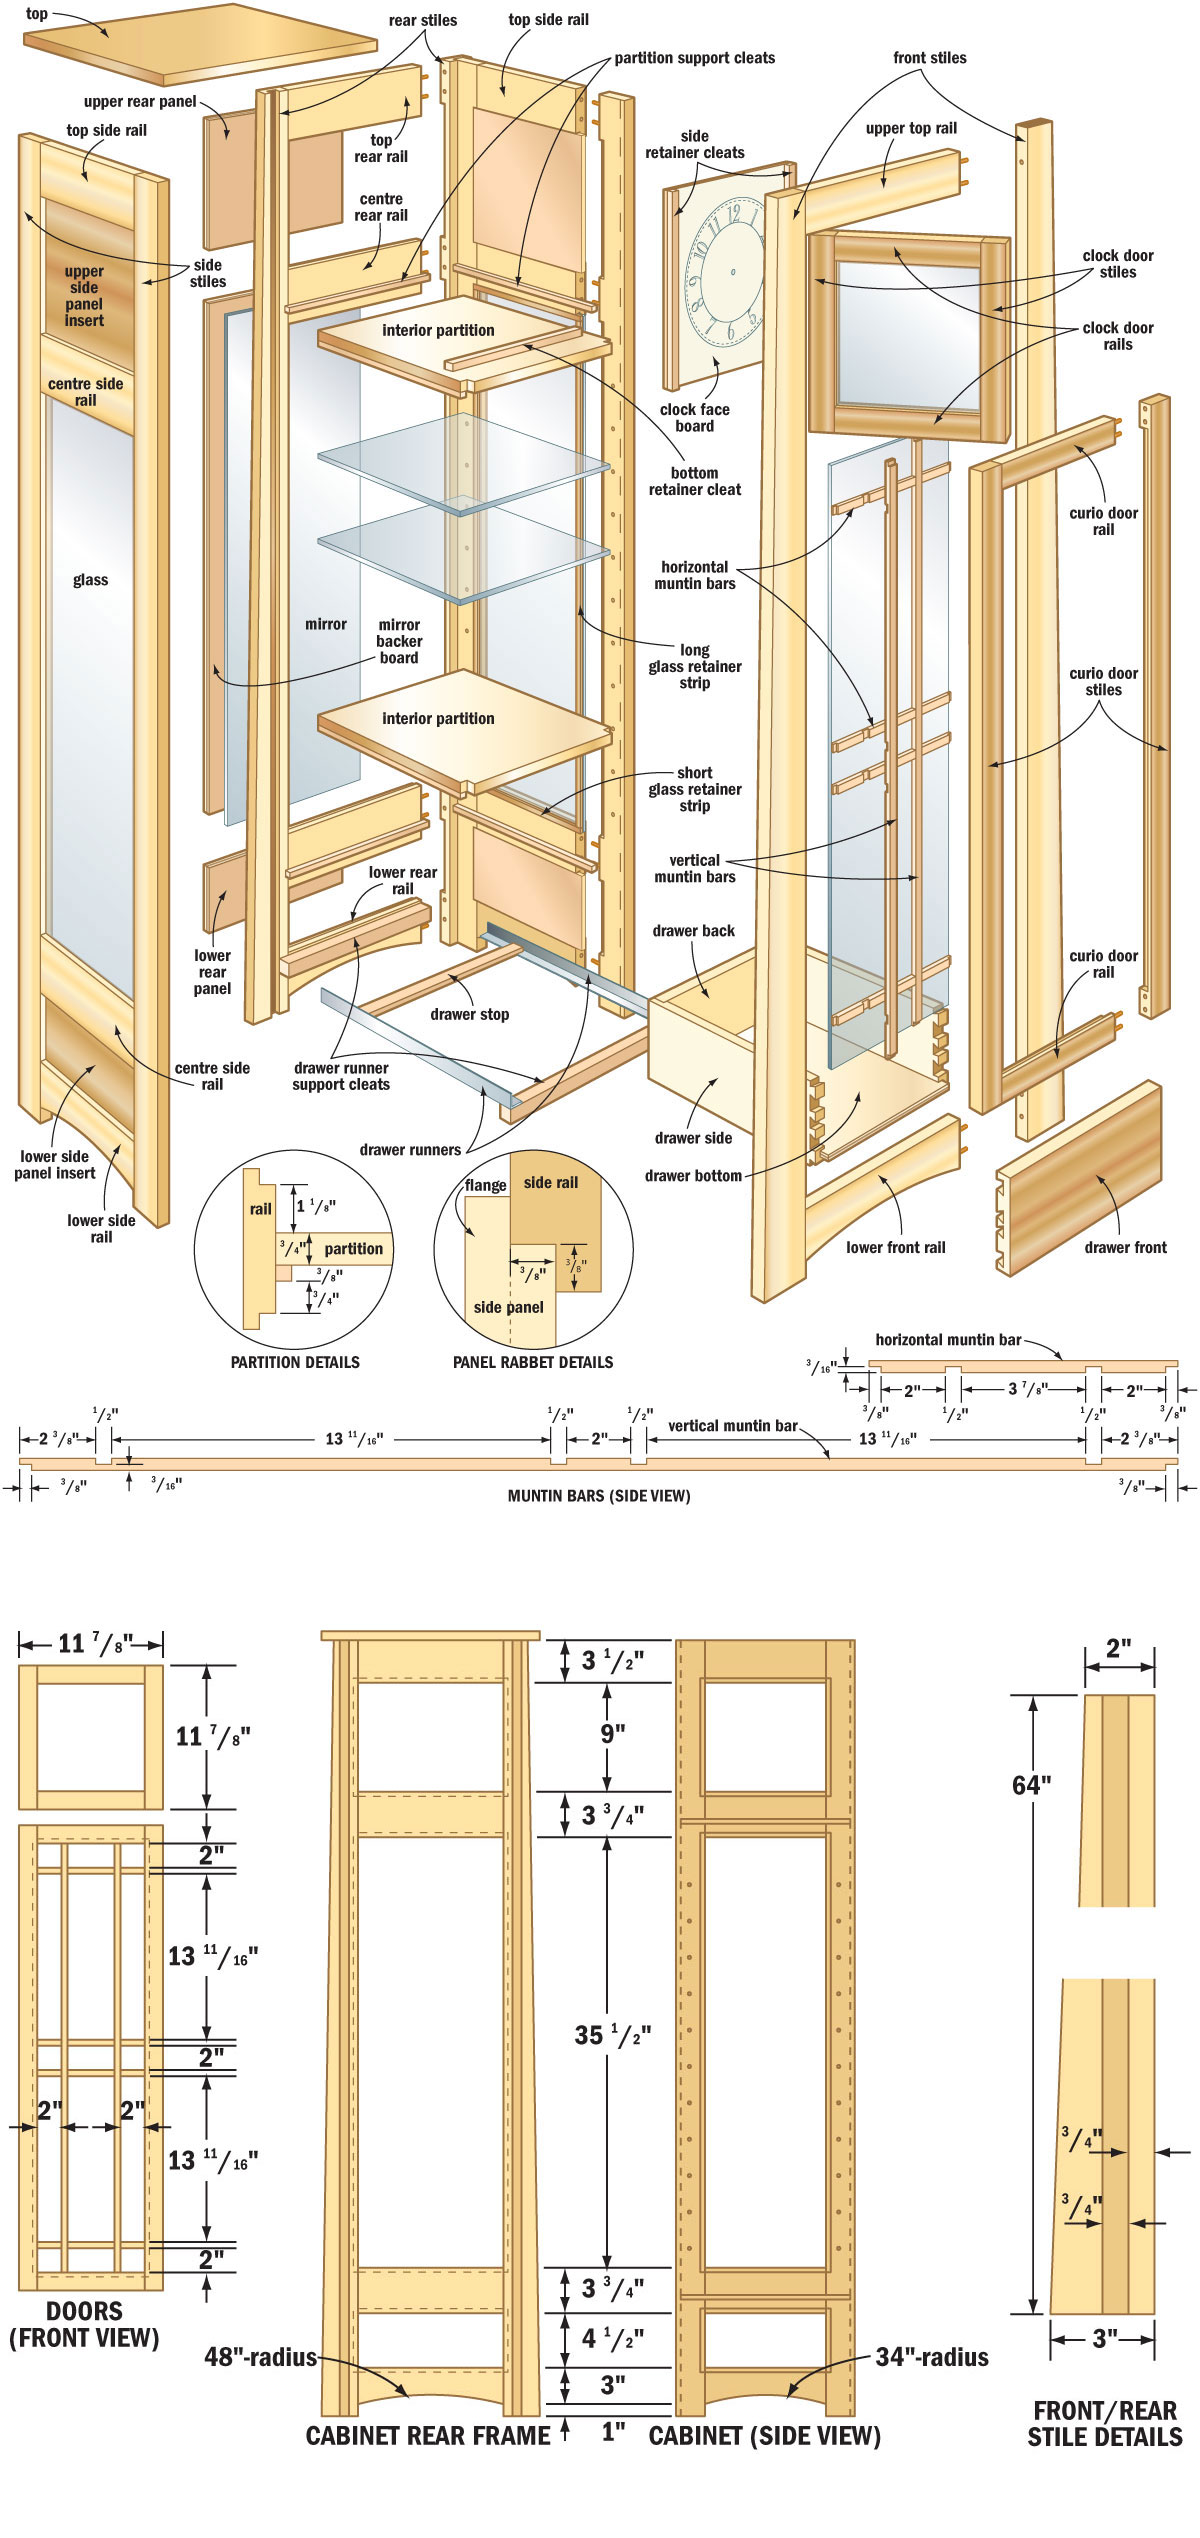 cabinet plans shelves Plans to build PDF Download rockland woodworking ...